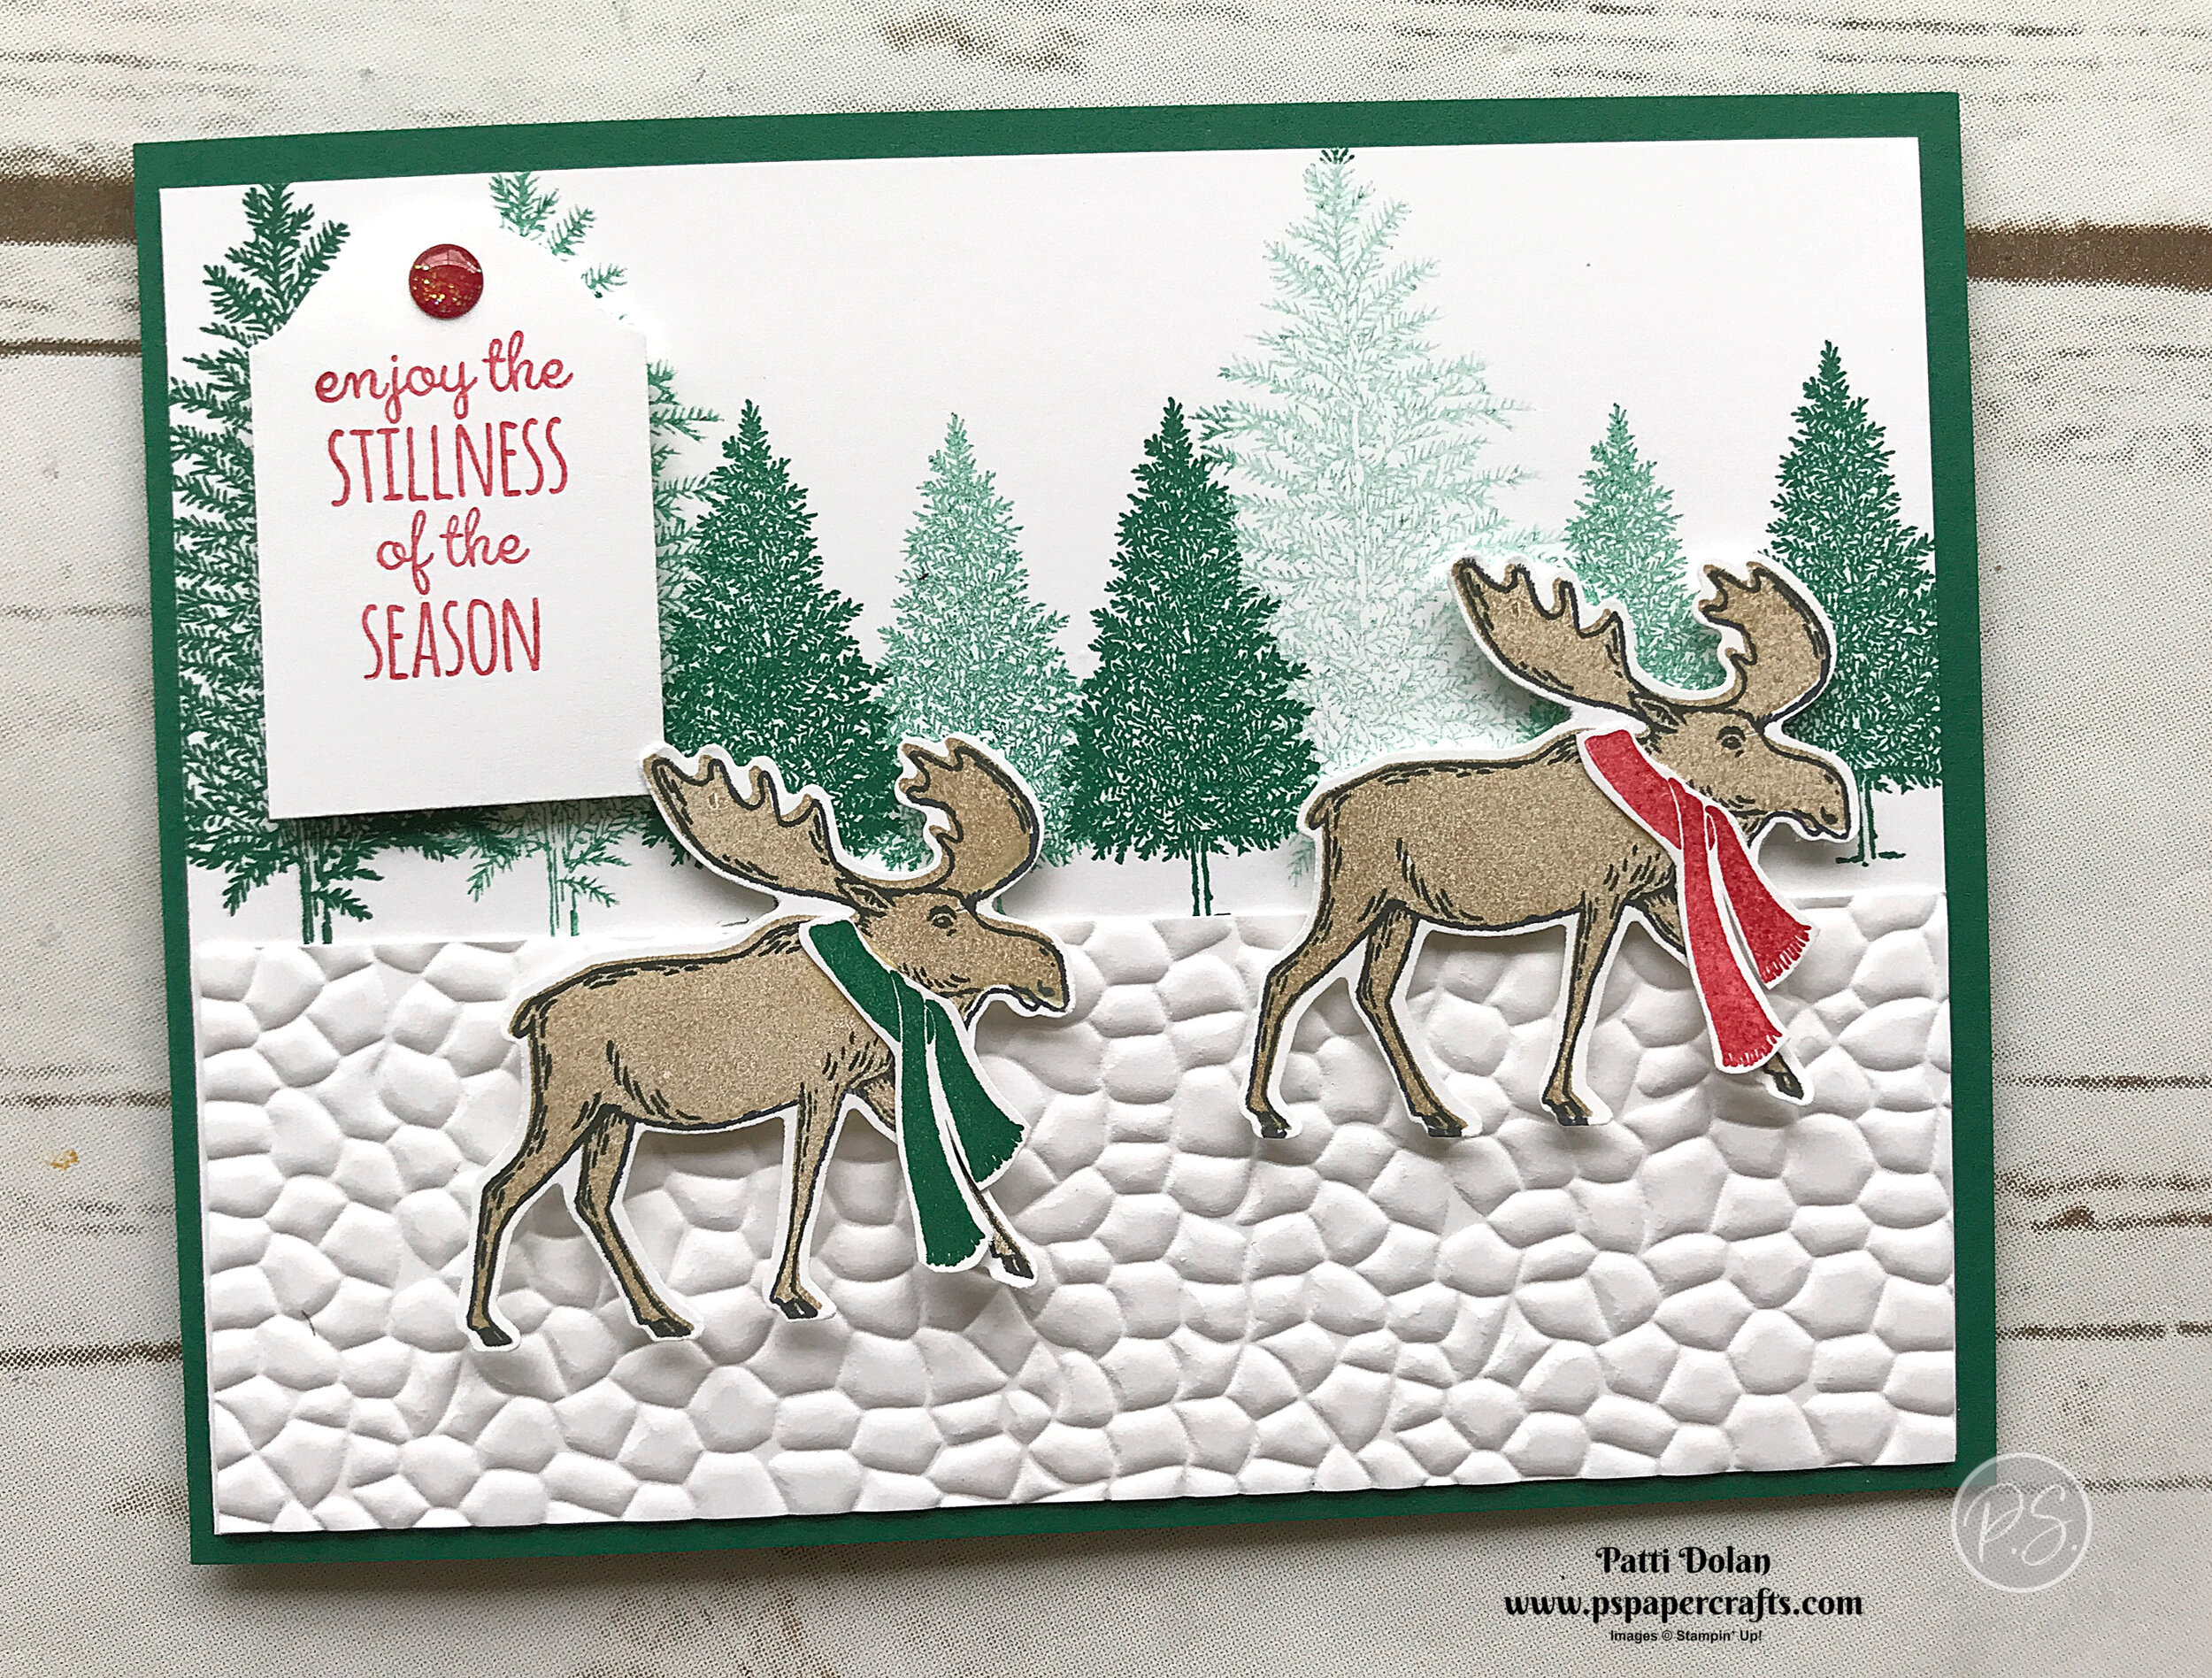 Merry Moose Stillness of the Season Card2.jpg